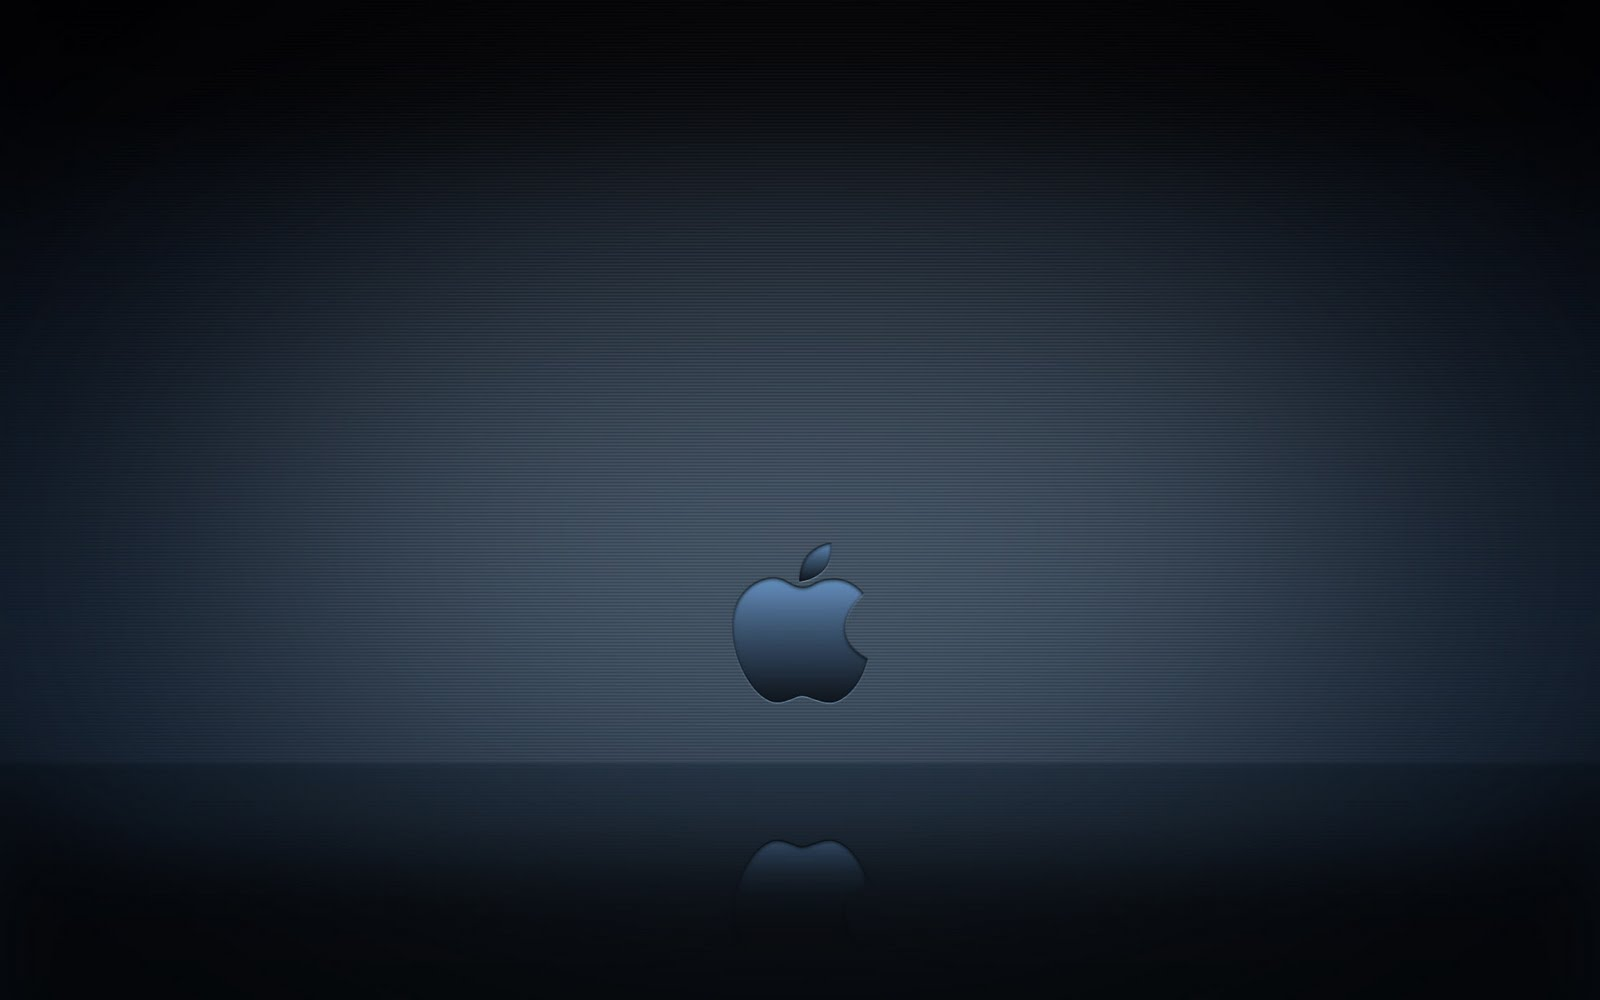 wallpaper: apple wallpaper hd for iphone 5